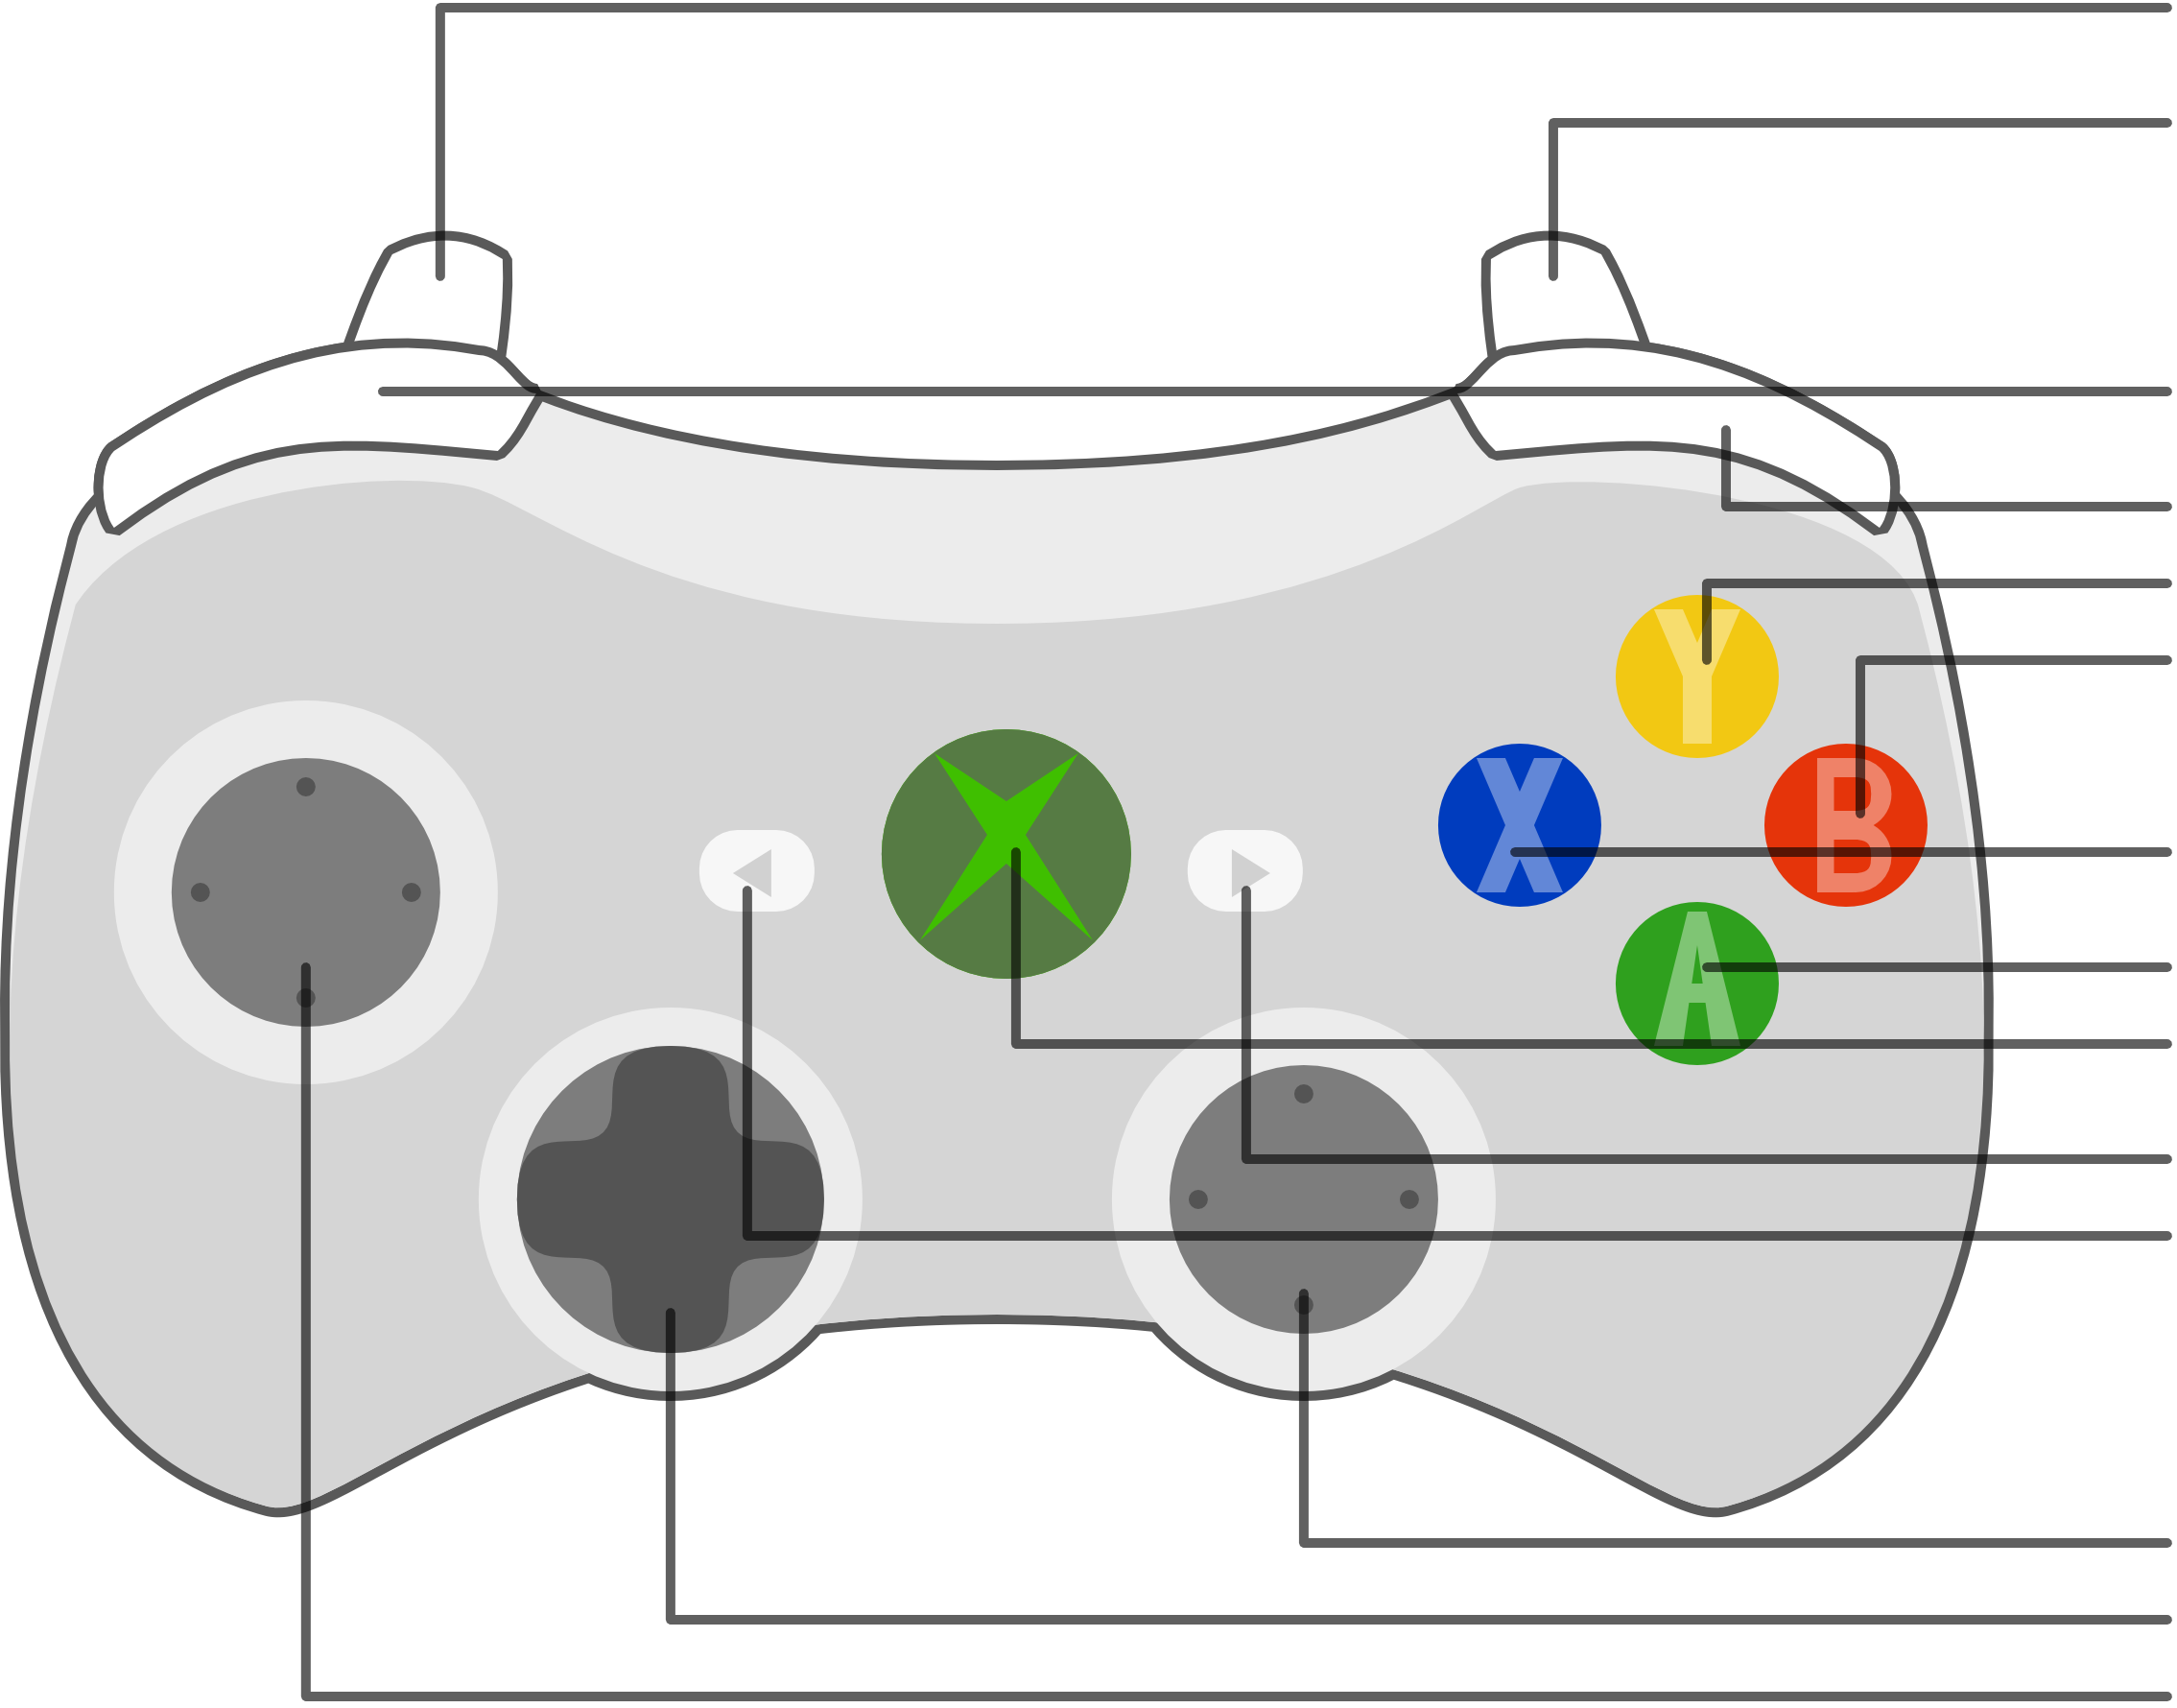 Xbox 360 Controller Control Scheme Diagram By Qubodup On Deviantart